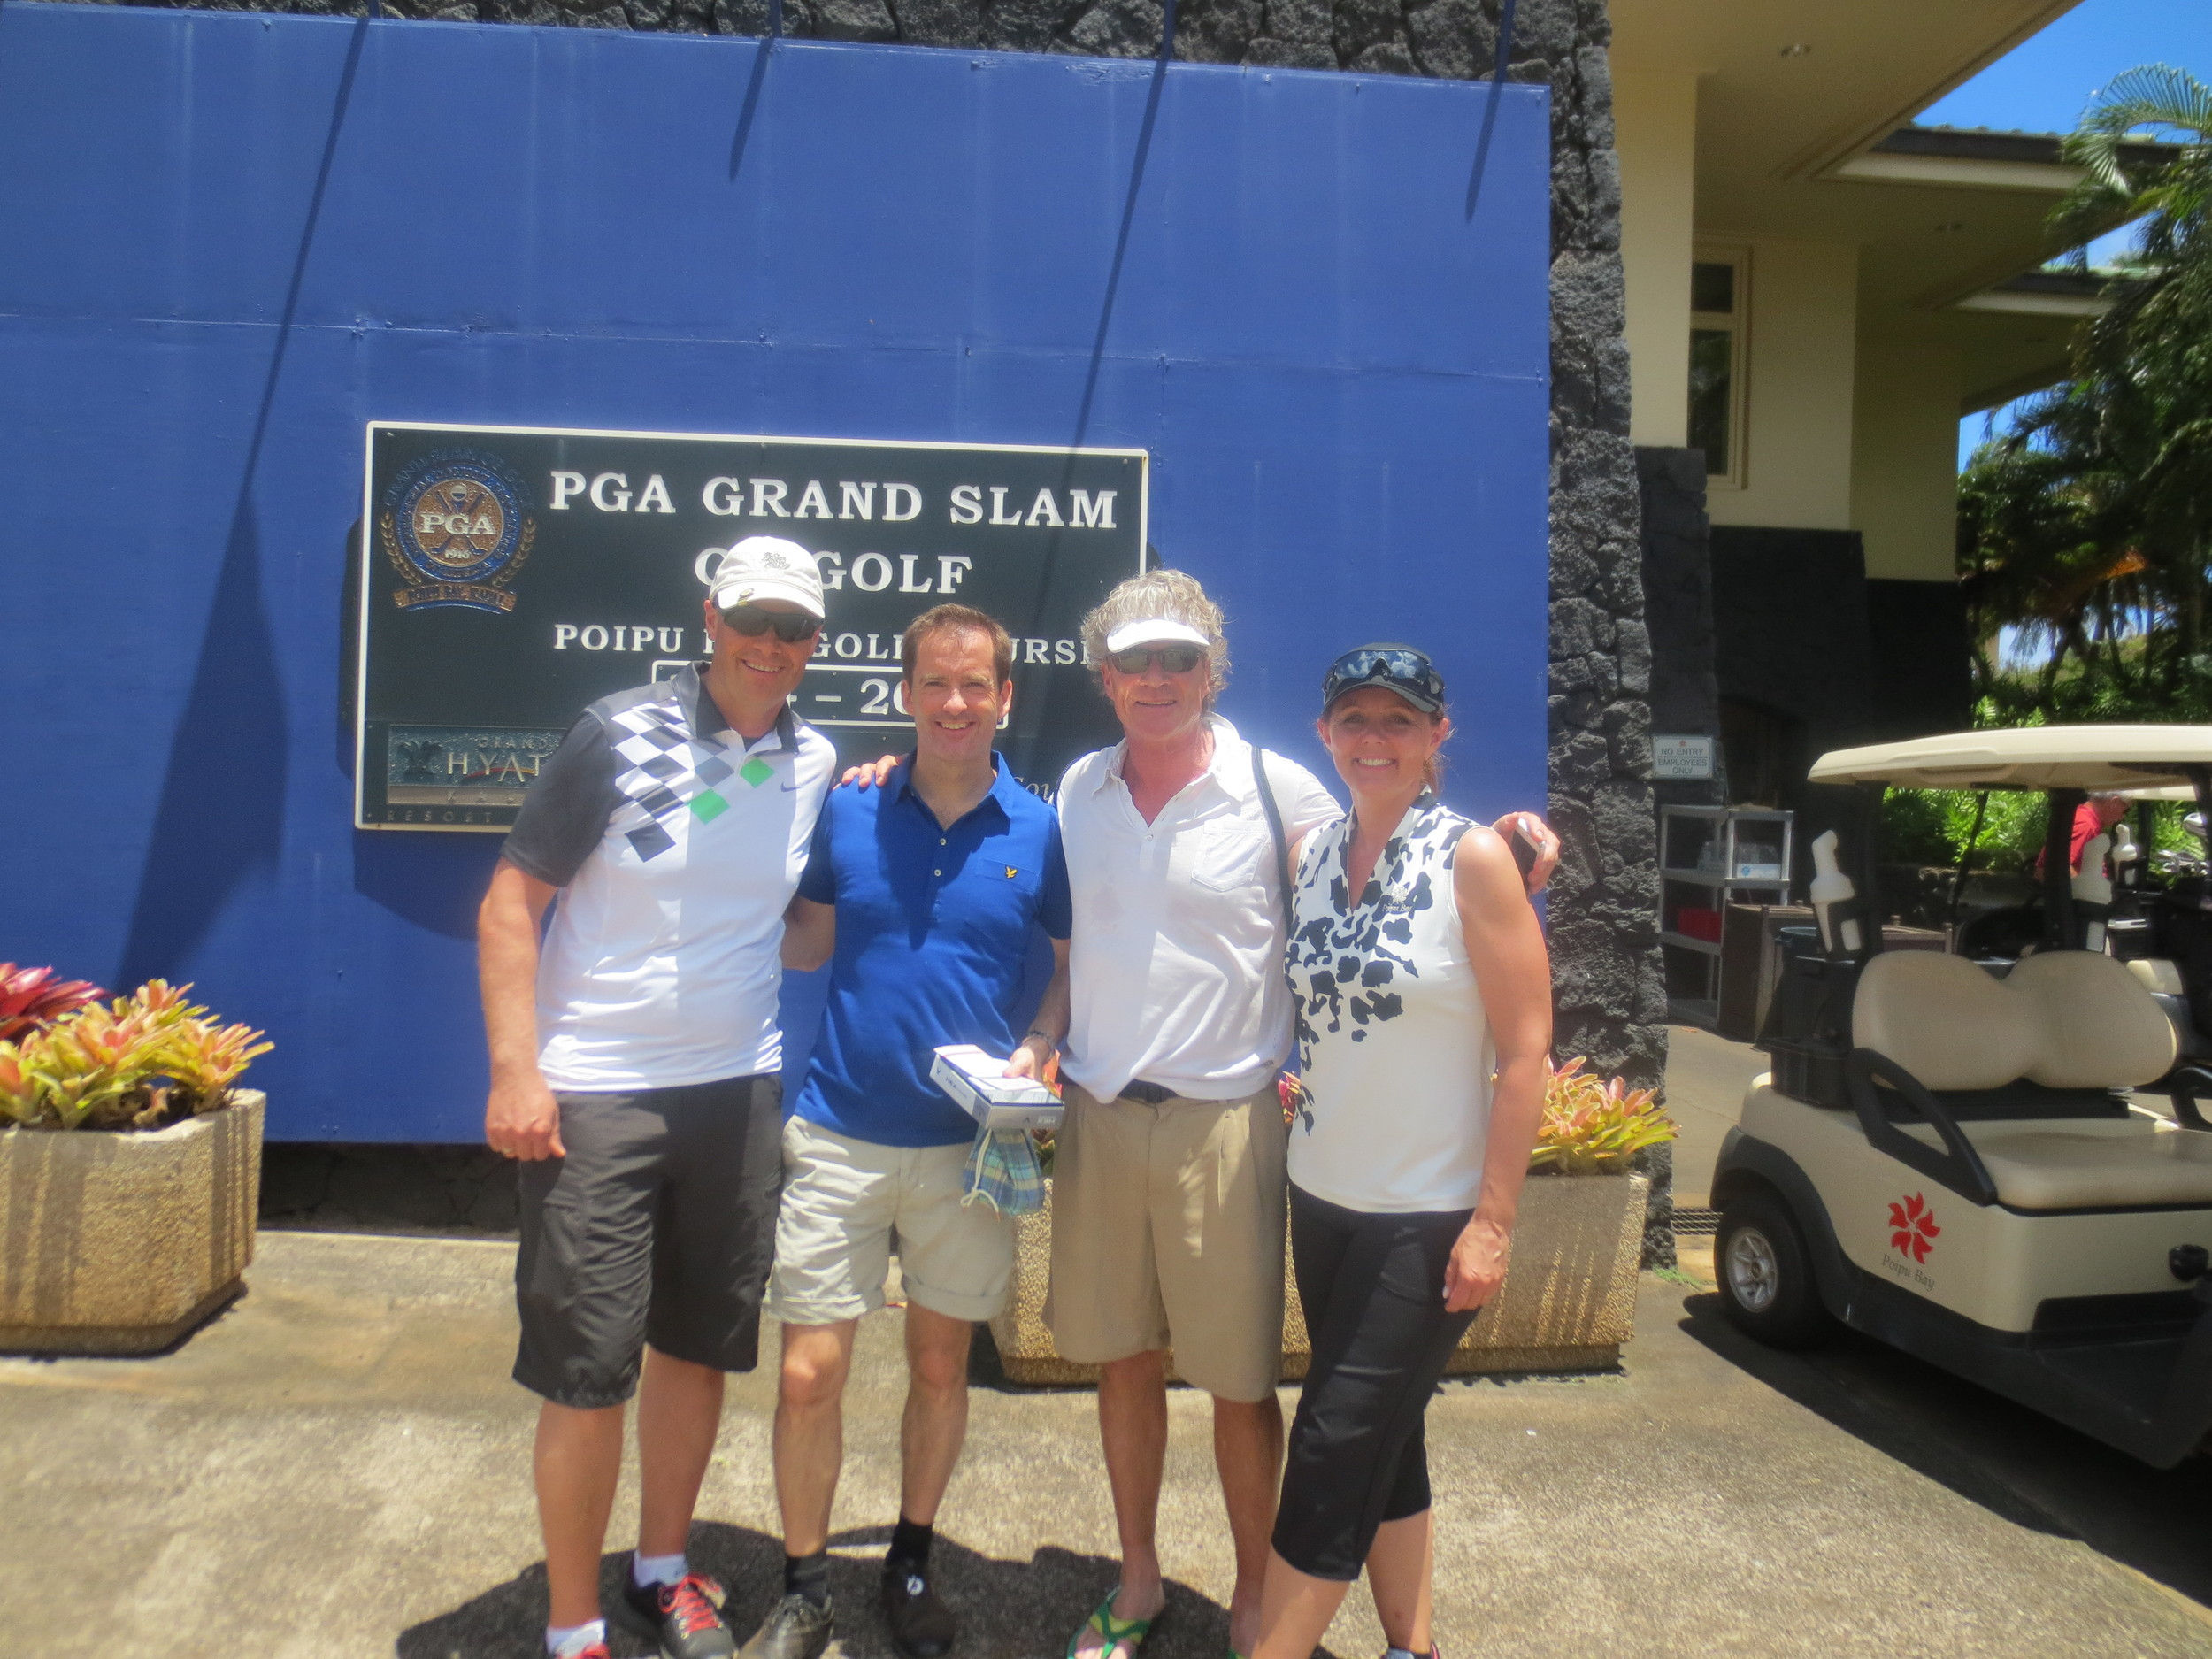 After a great golf round with Mikael Linder and Gary